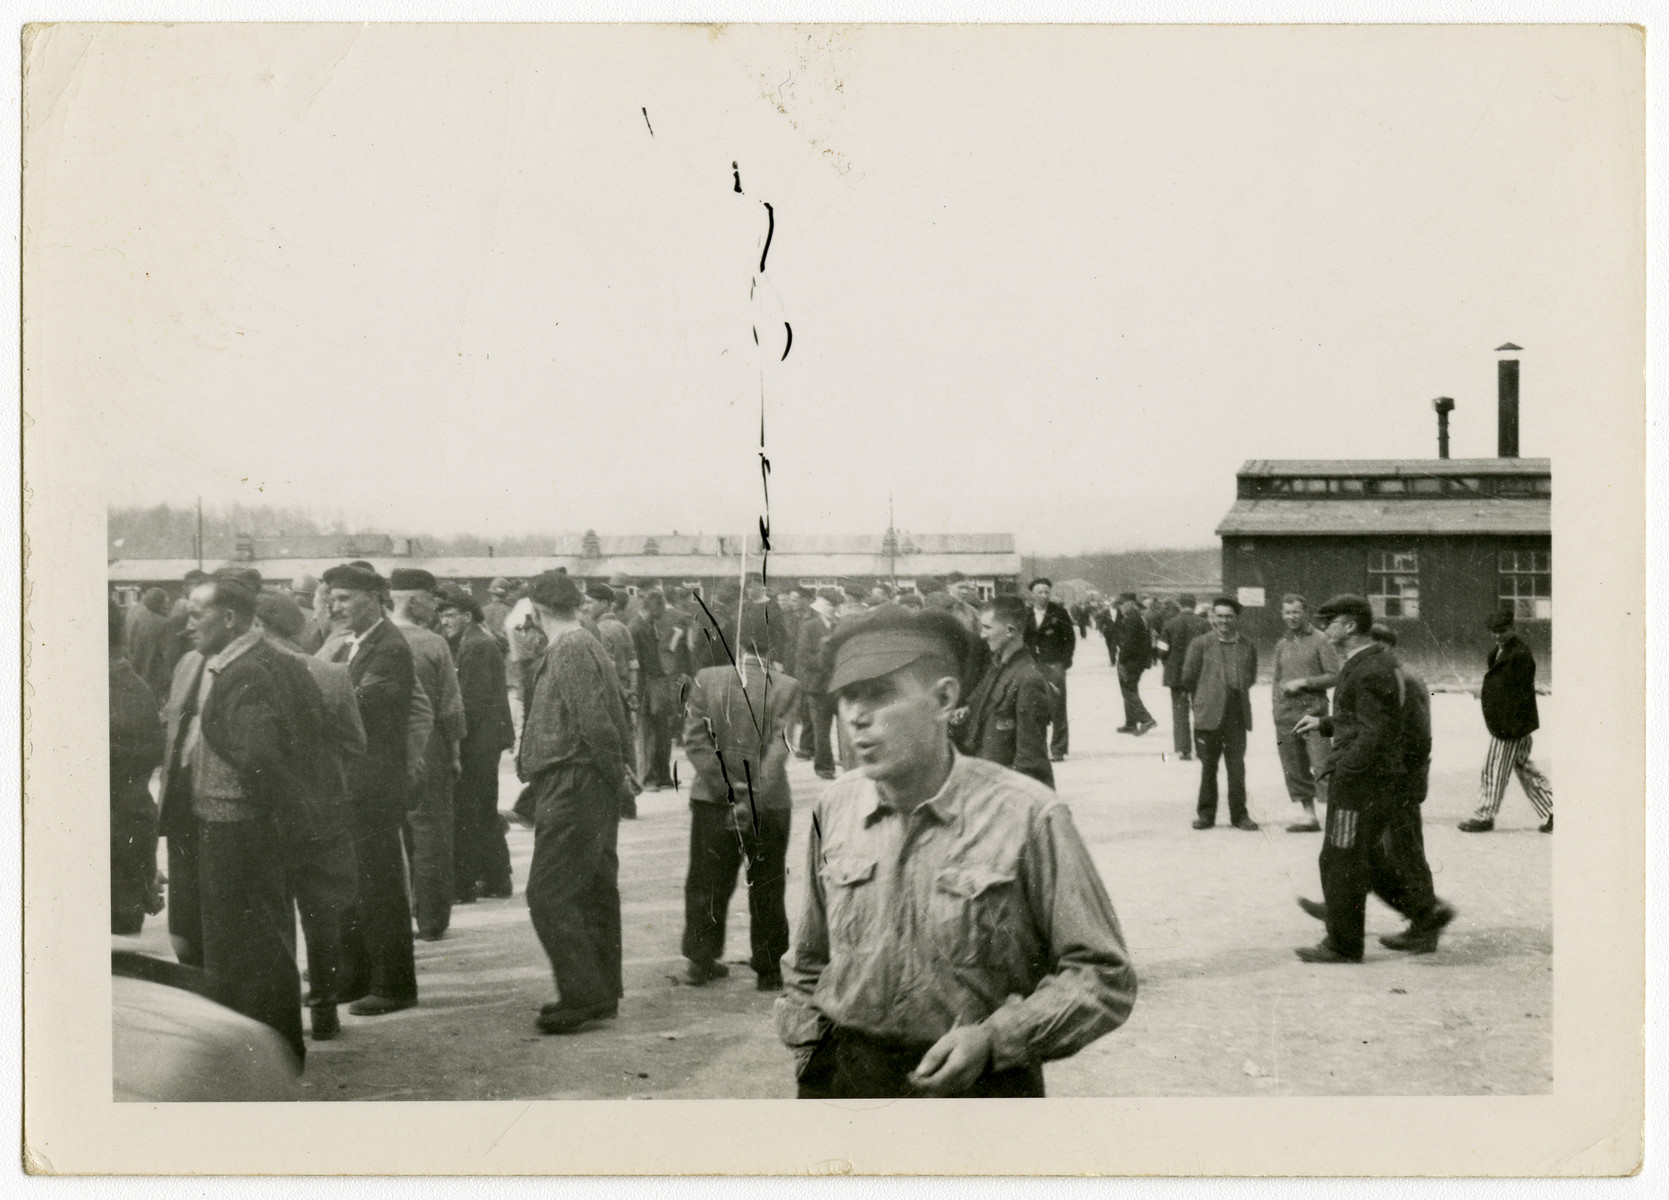 Survivors gather in the open courtyard of [what is probably the Buchenwald concentration camp] after liberation.